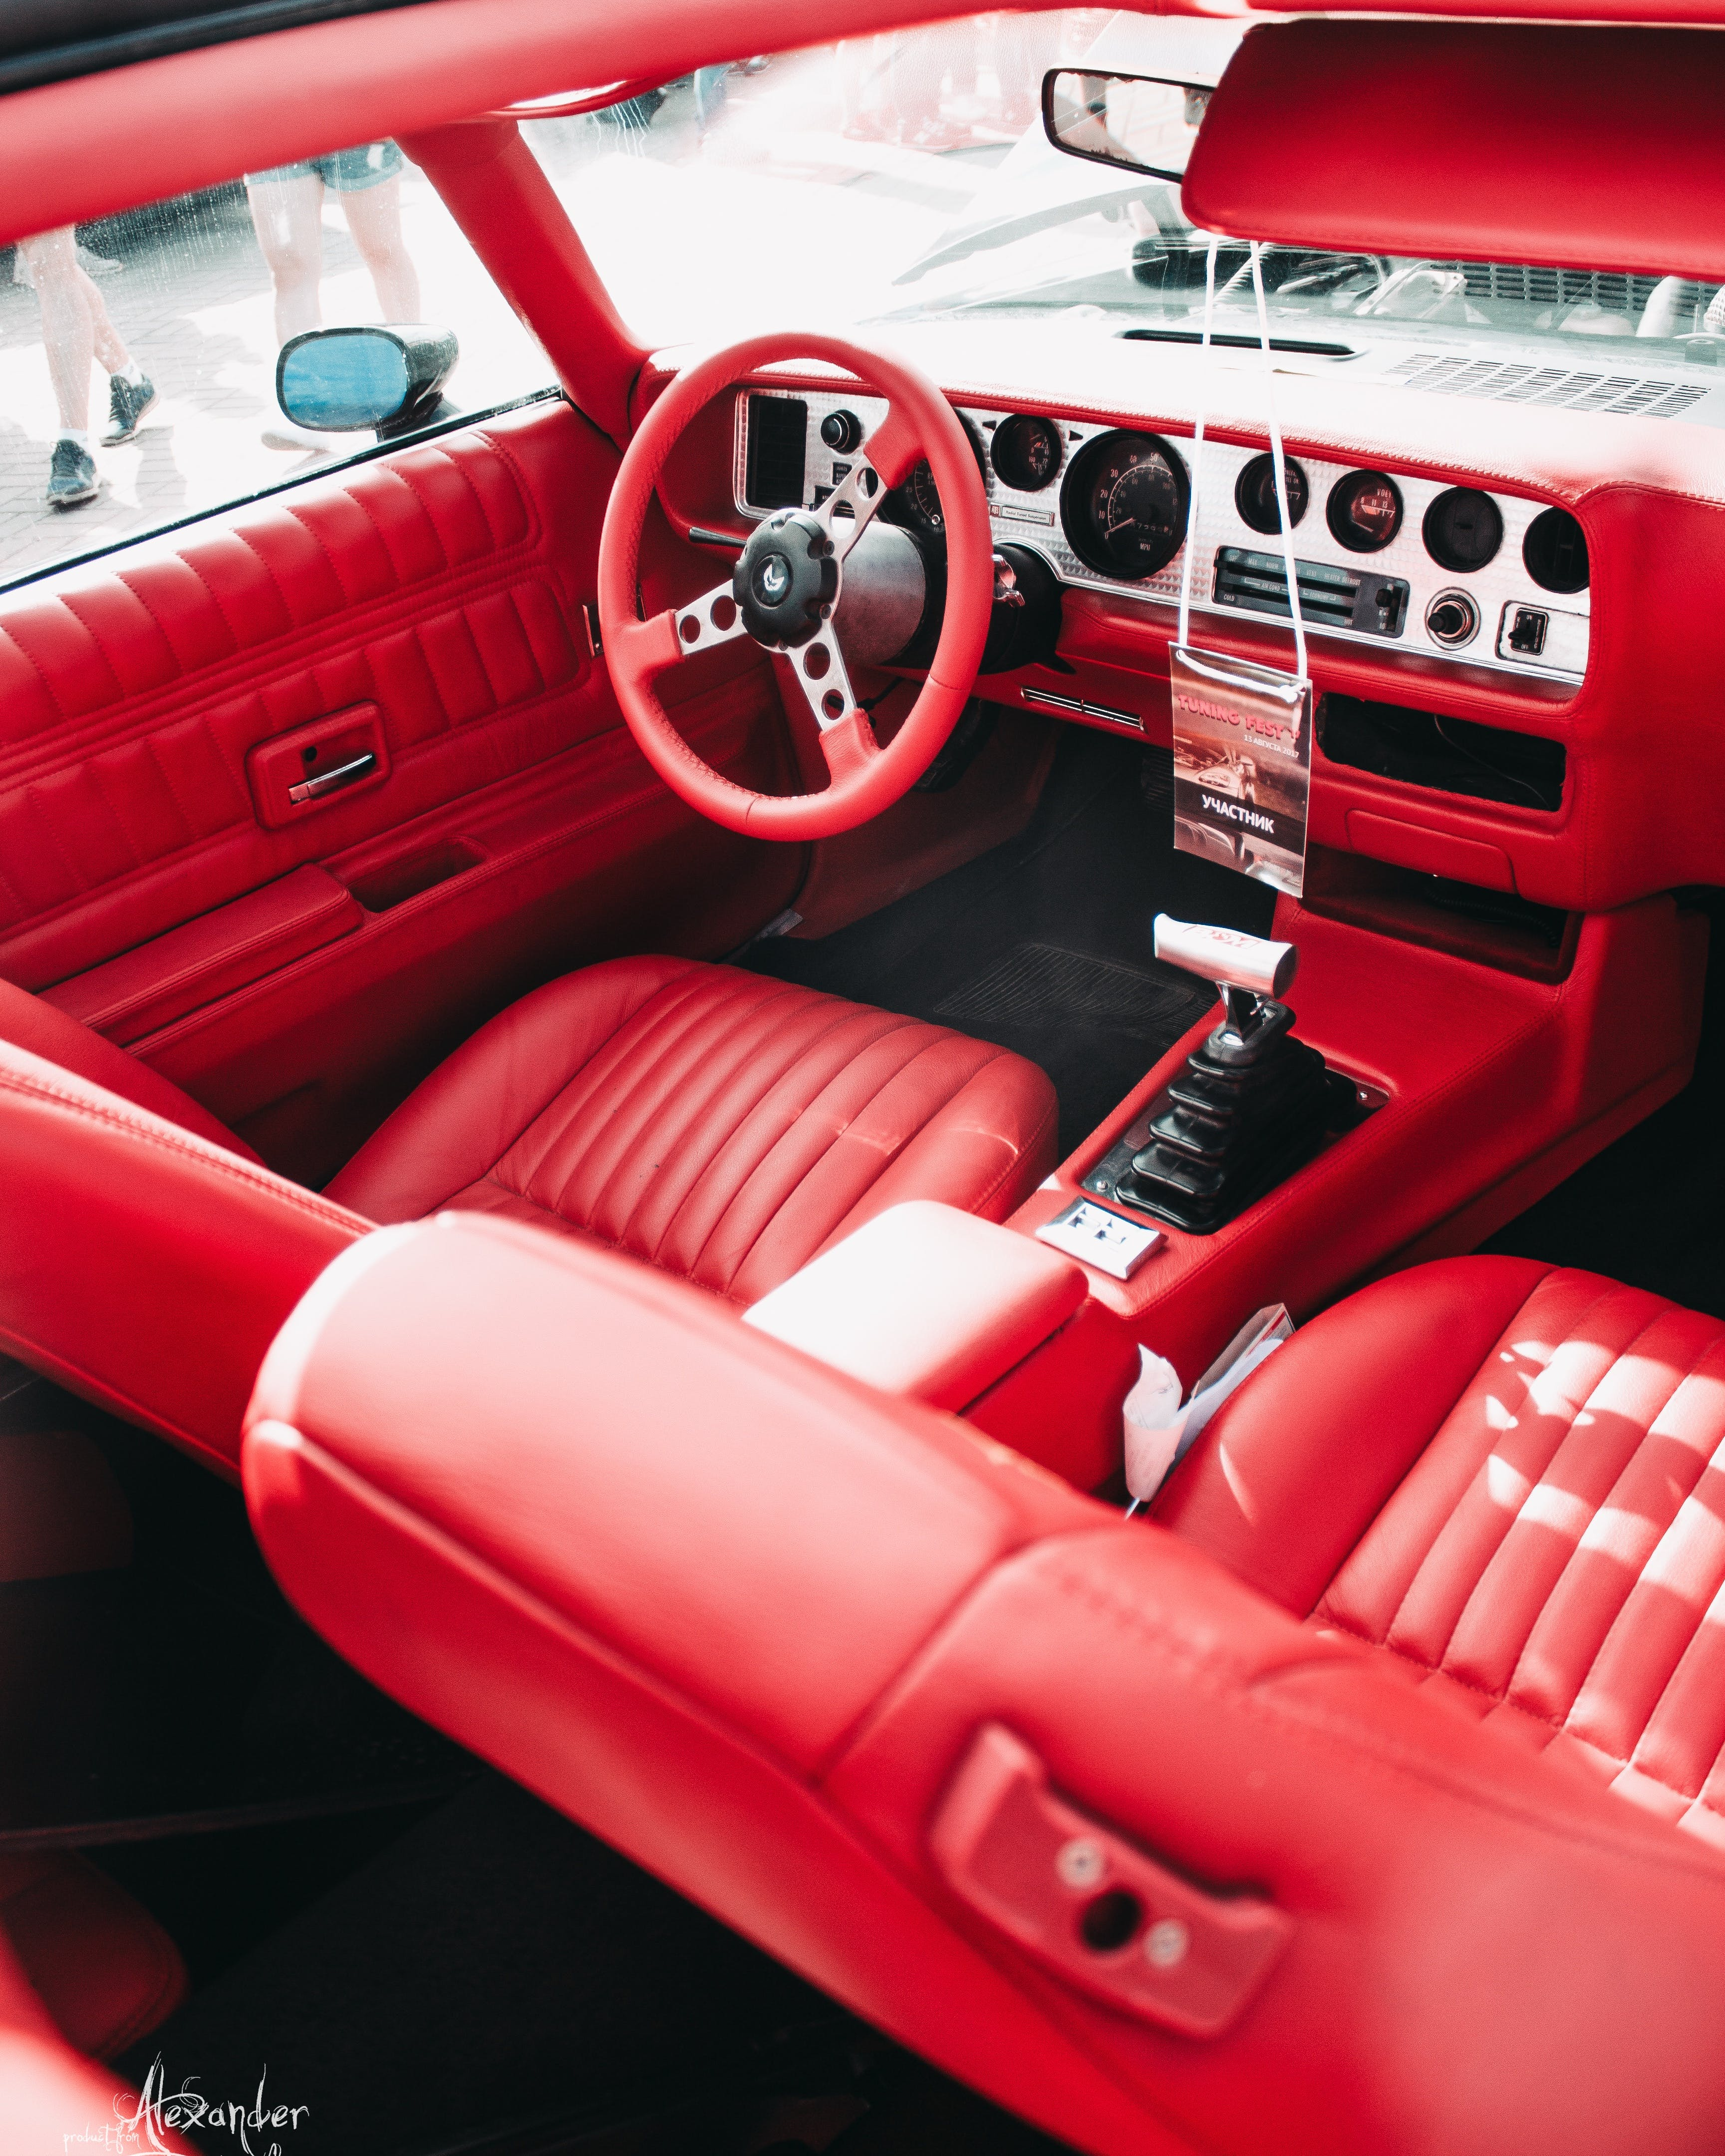 Free stock photo of red, car, interior